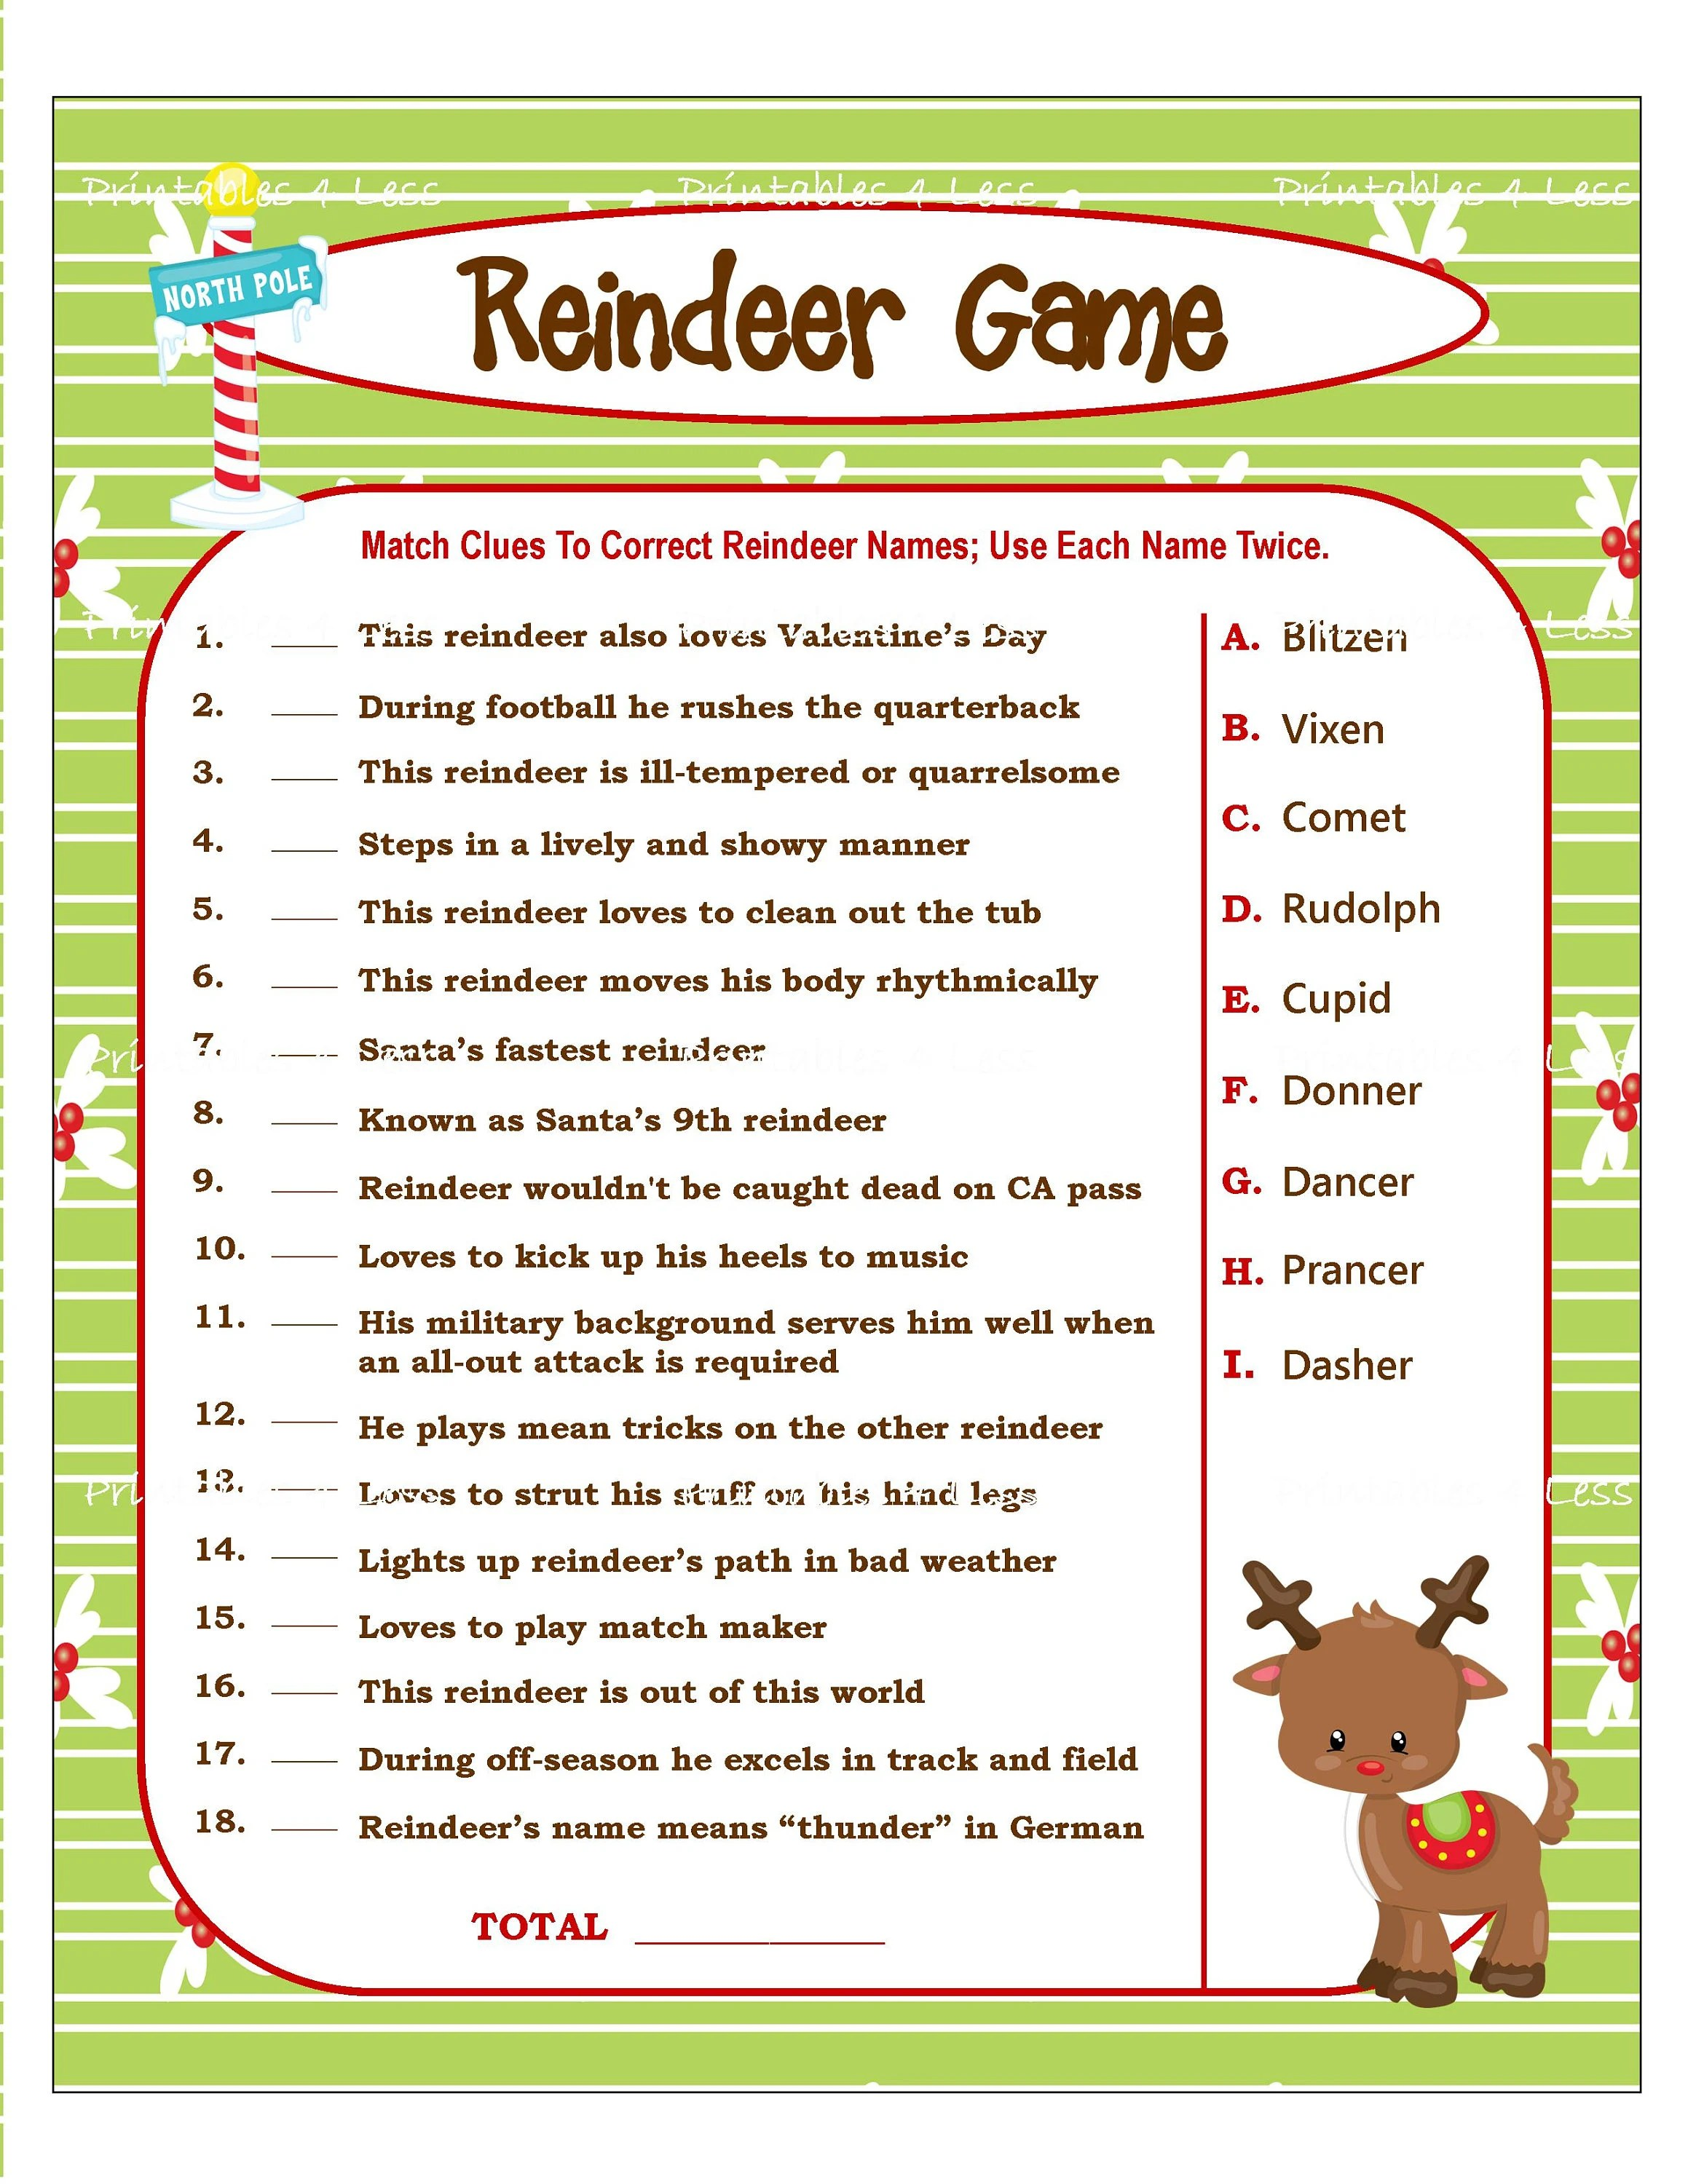 Reindeer Game Printable Christmas Game For Party Diy Holiday